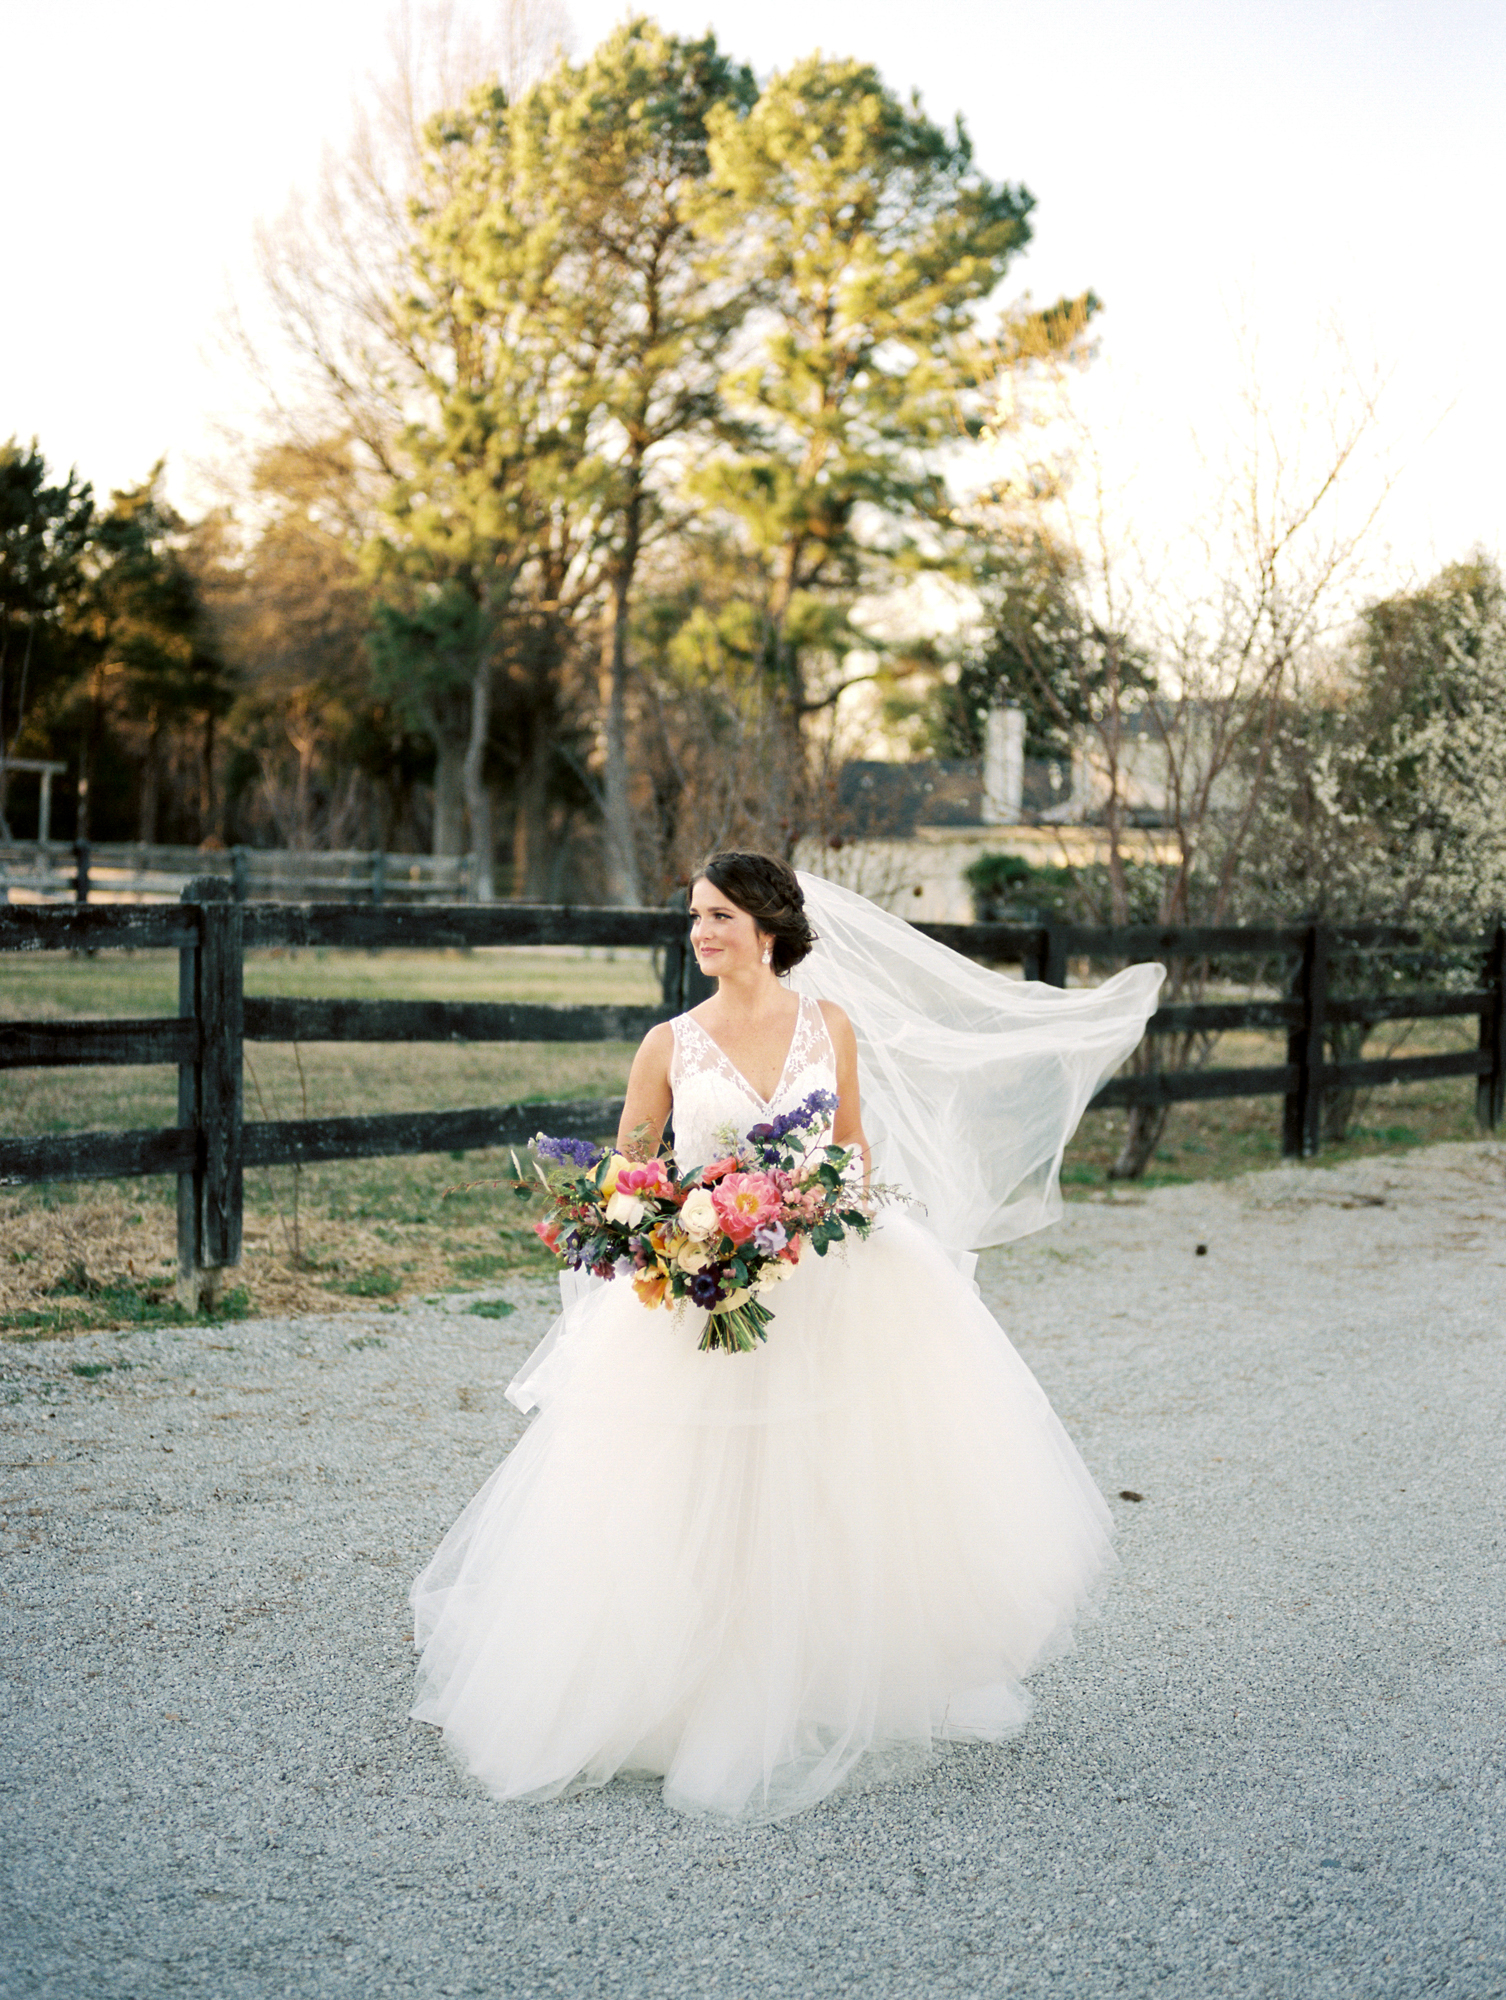 Germantown Farm Park Styled Shoot - Memphis Wedding Photography - Kaitlyn Stoddard-Carter (1 of 1).jpg